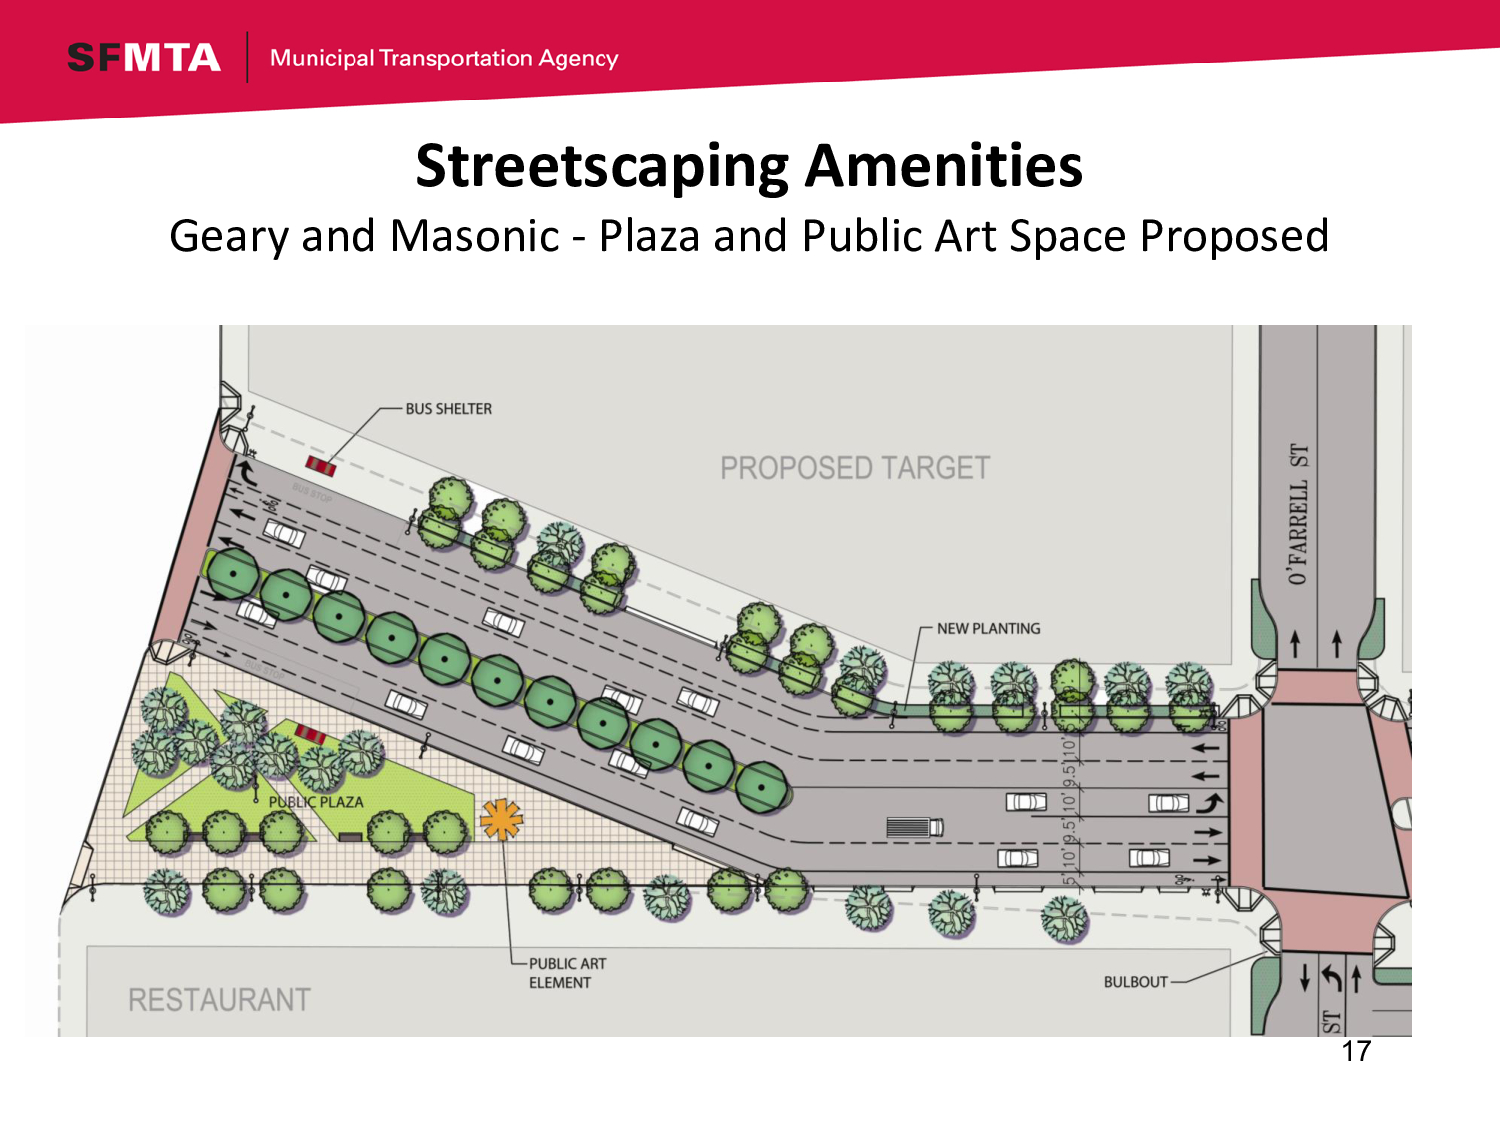 An SFMTA official at the meeting said they had not discussed extending the bike lanes into the intersections. Image: SFMTA.